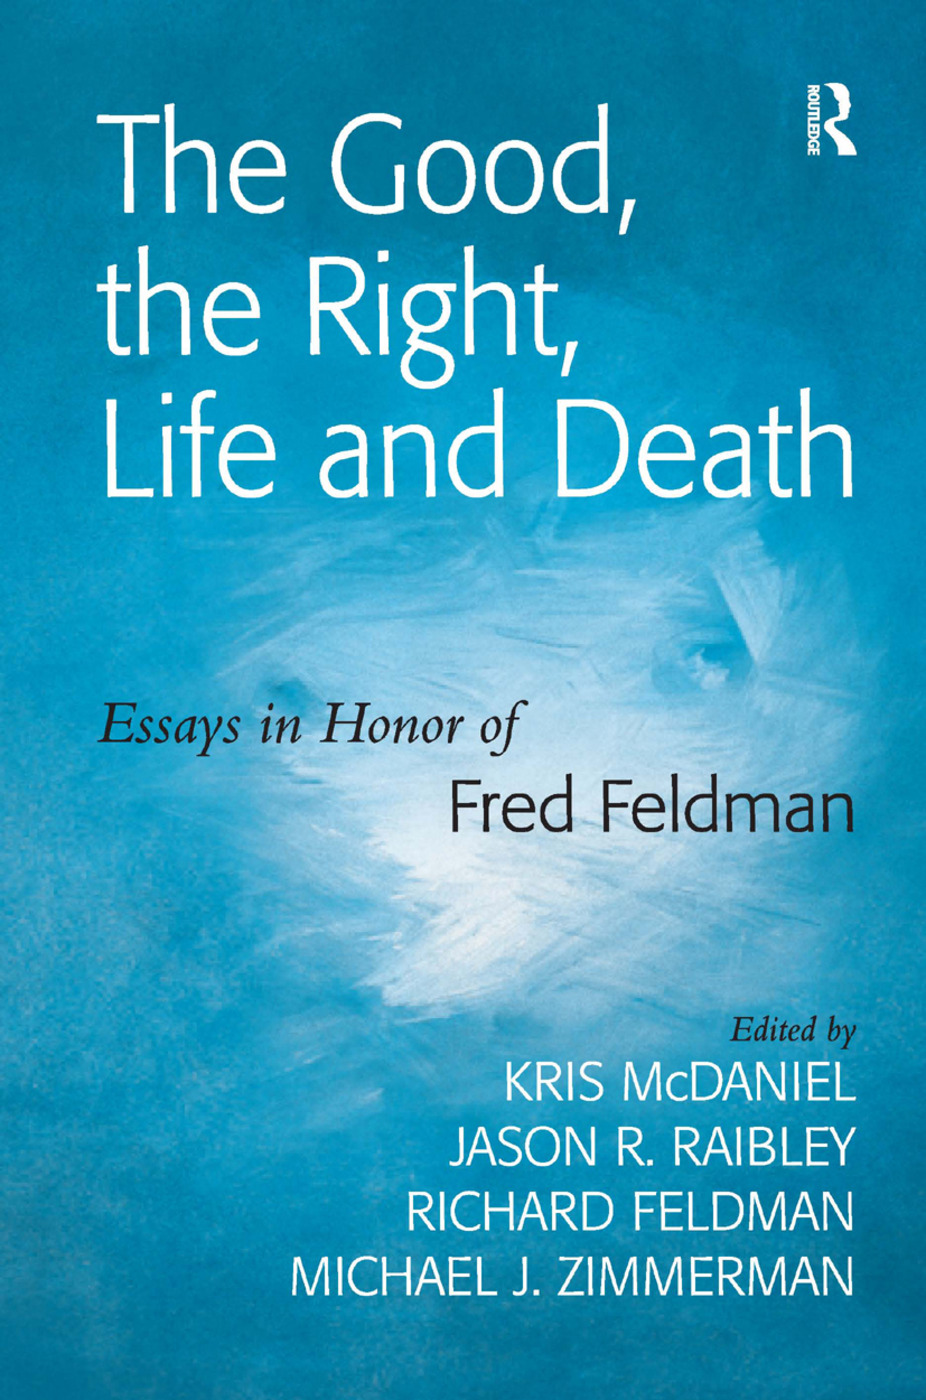 The Good, the Right, Life and Death: Essays in Honor of Fred Feldman book cover